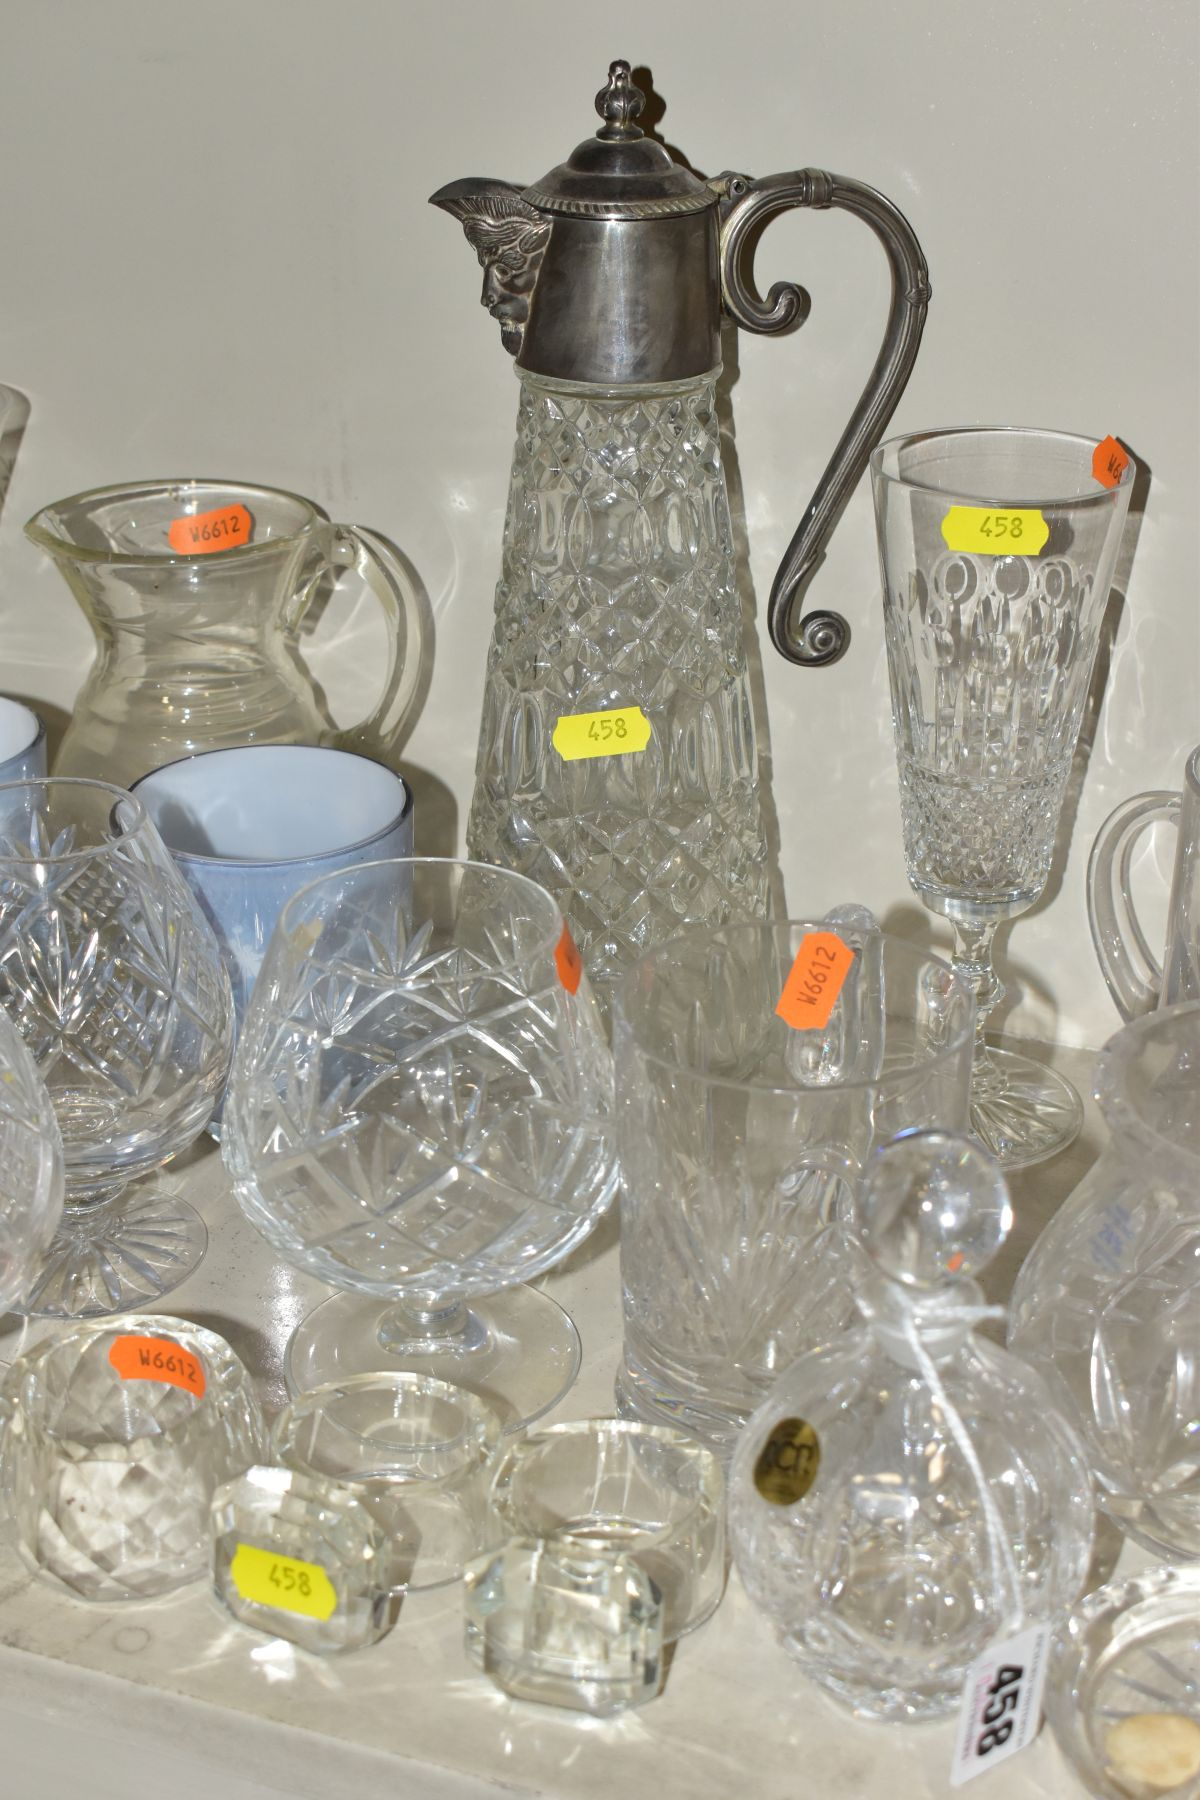 A SMALL QUANTITY OF CLEAR AND COLOURED GLASSWARE, including an Edinburgh Crystal vase, height 25. - Image 6 of 10